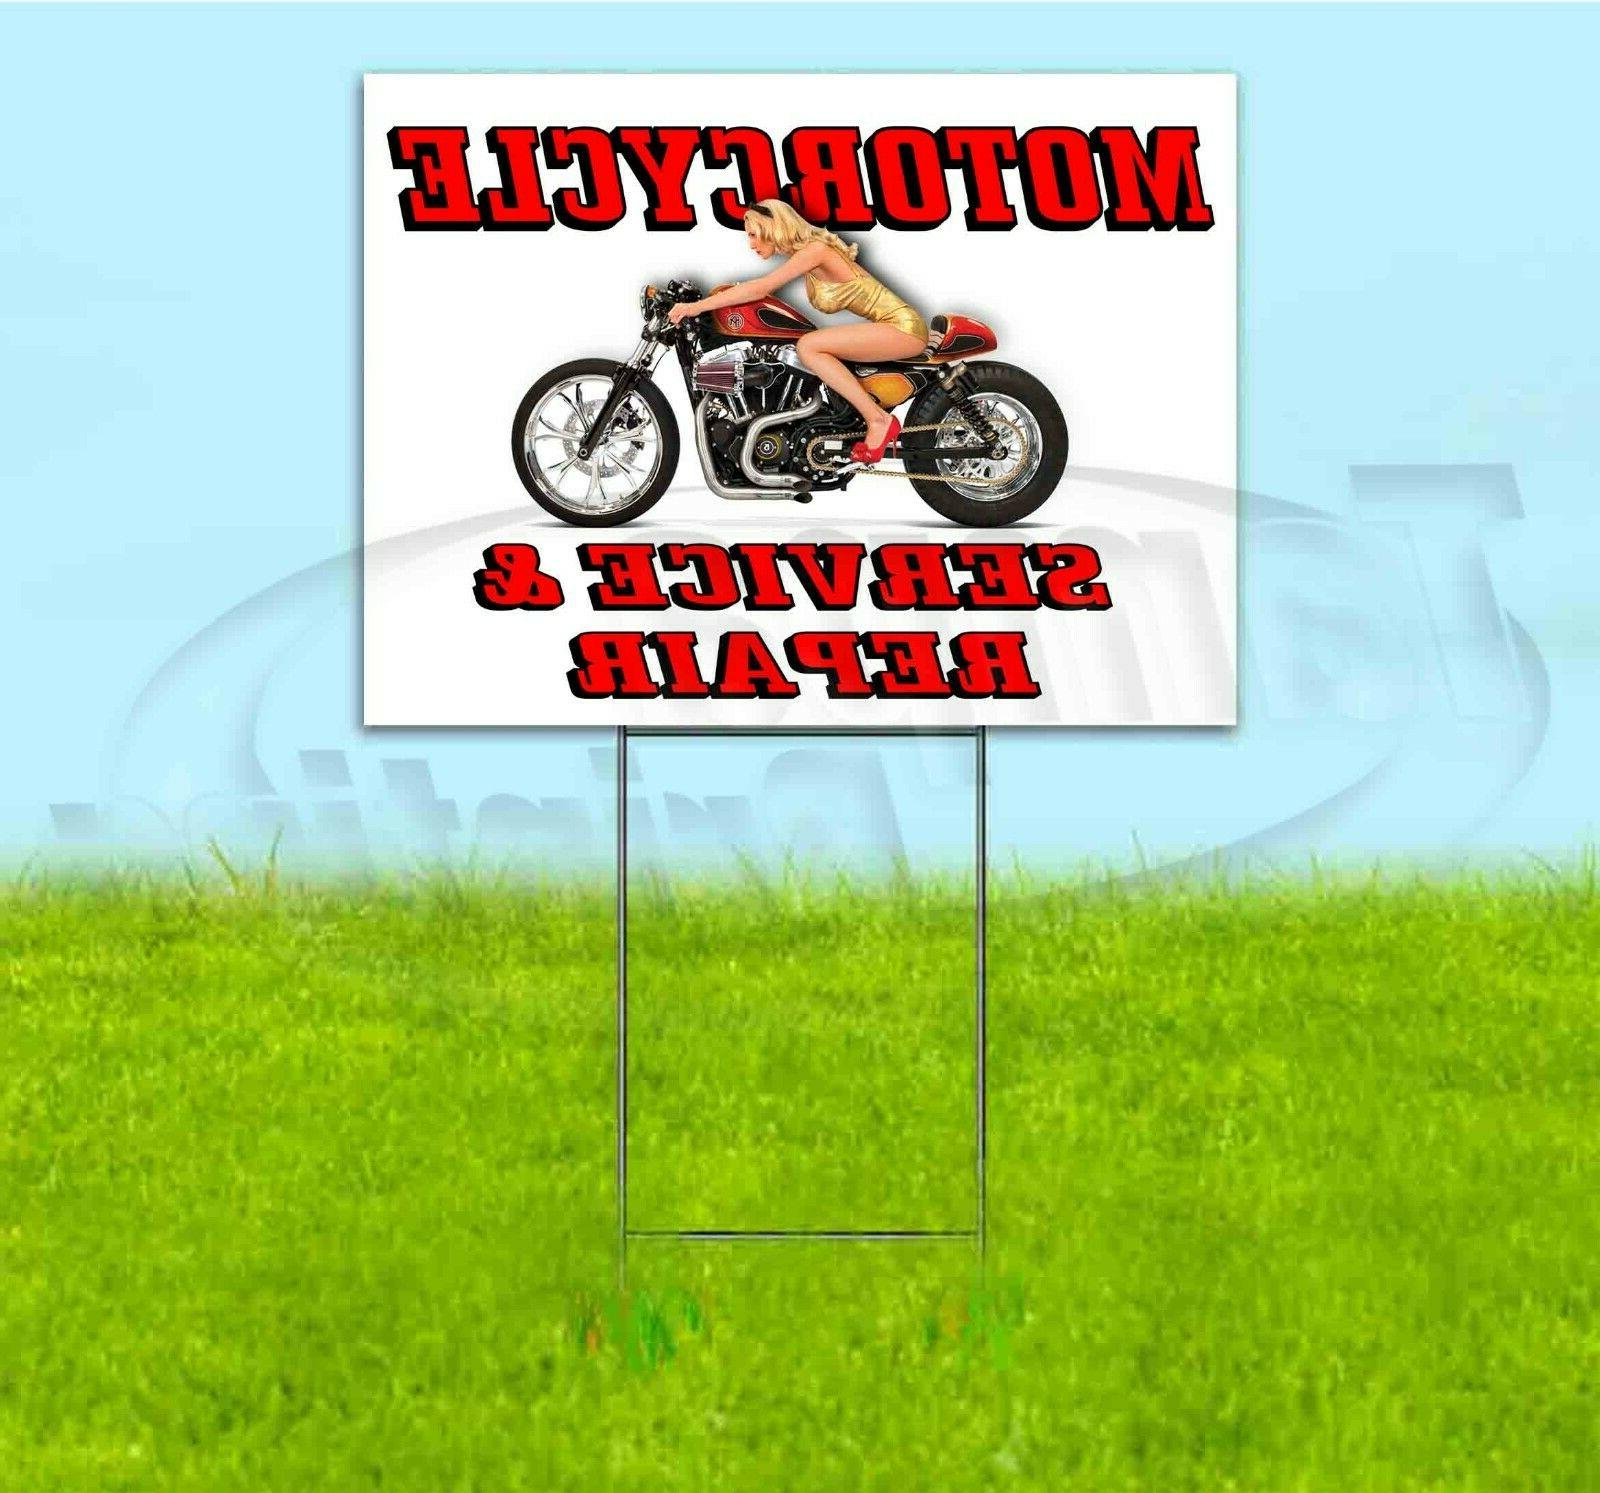 motorcycle service and repair 18x24 yard sign